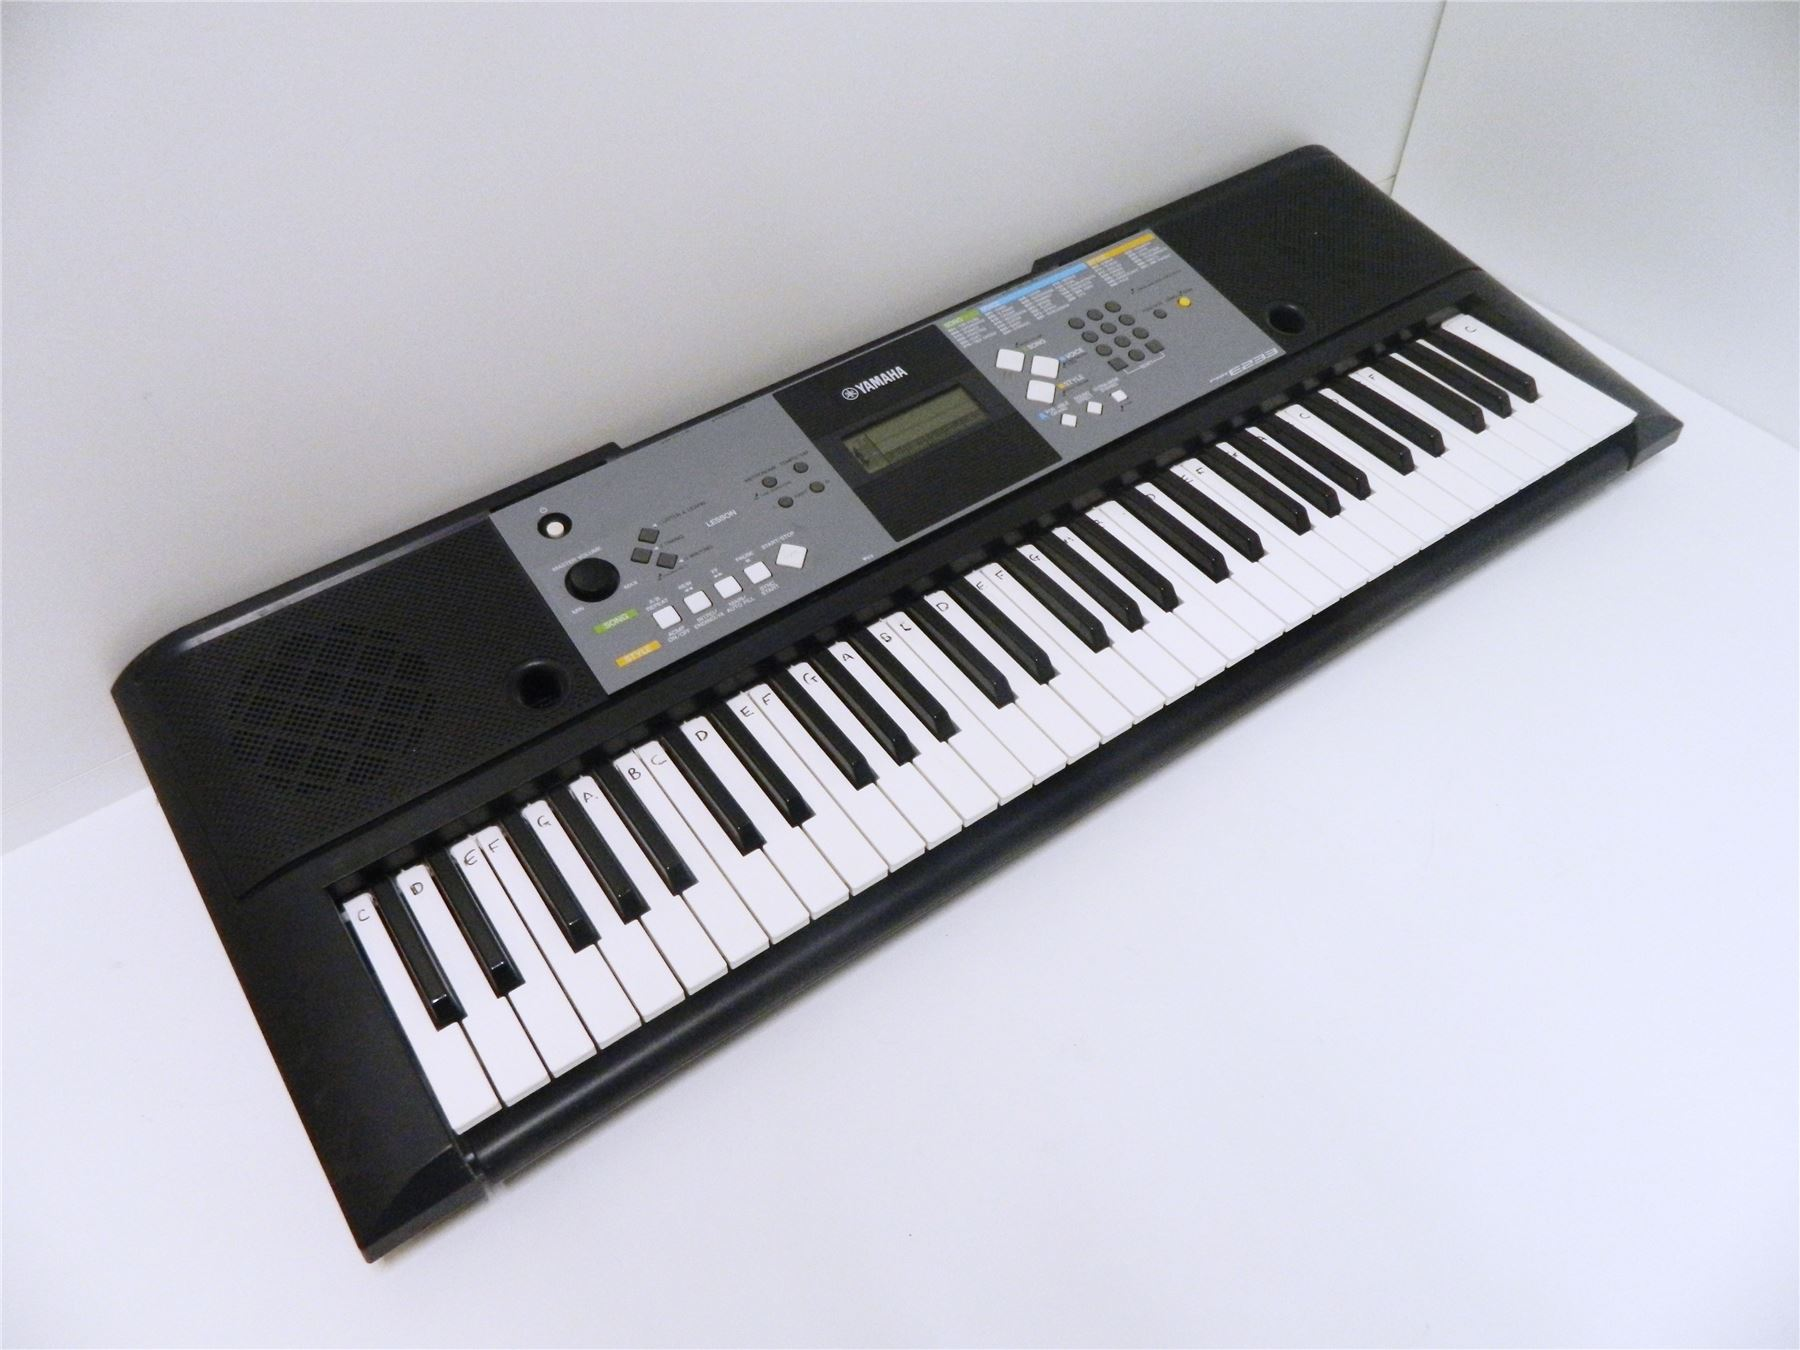 yamaha psr e233 digital piano keyboard portable includes power adapter ebay. Black Bedroom Furniture Sets. Home Design Ideas